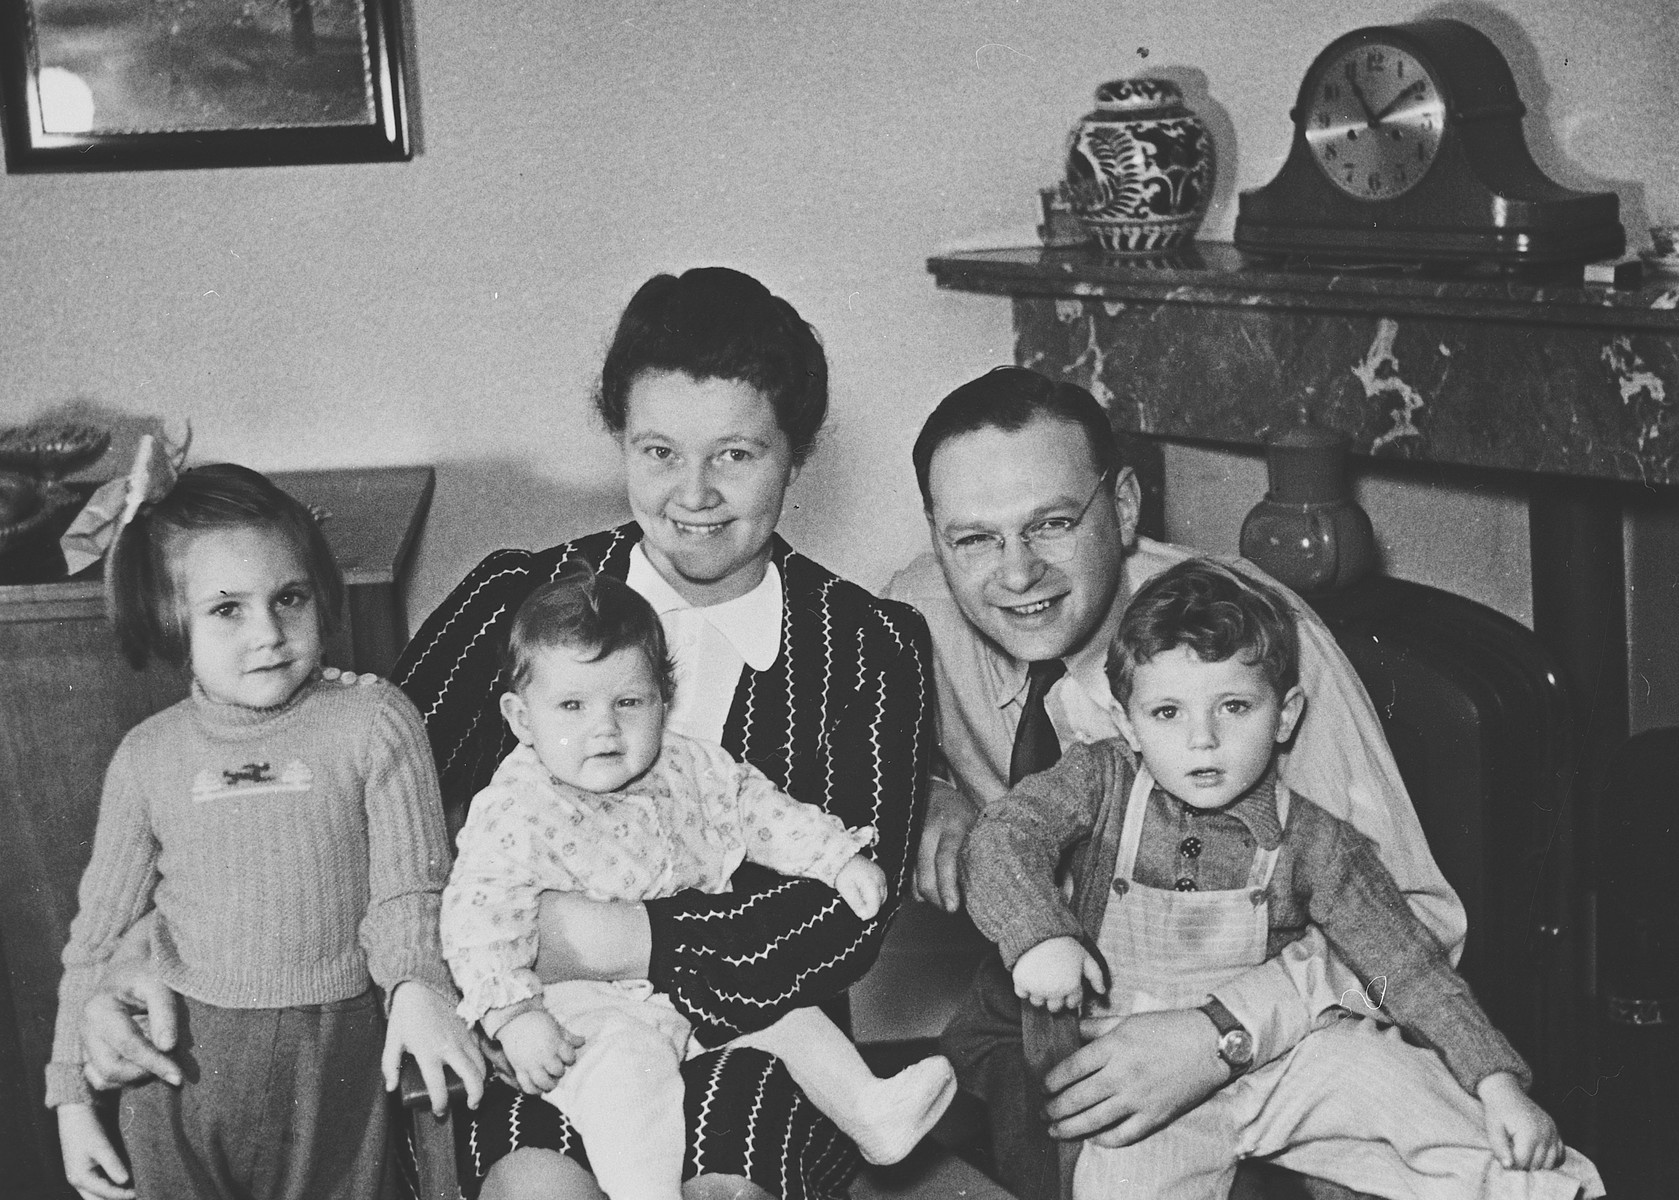 Postwar portrait of Frits and Jacoba Blom and their three children.  They hid Erich Zielenziger for over a year.